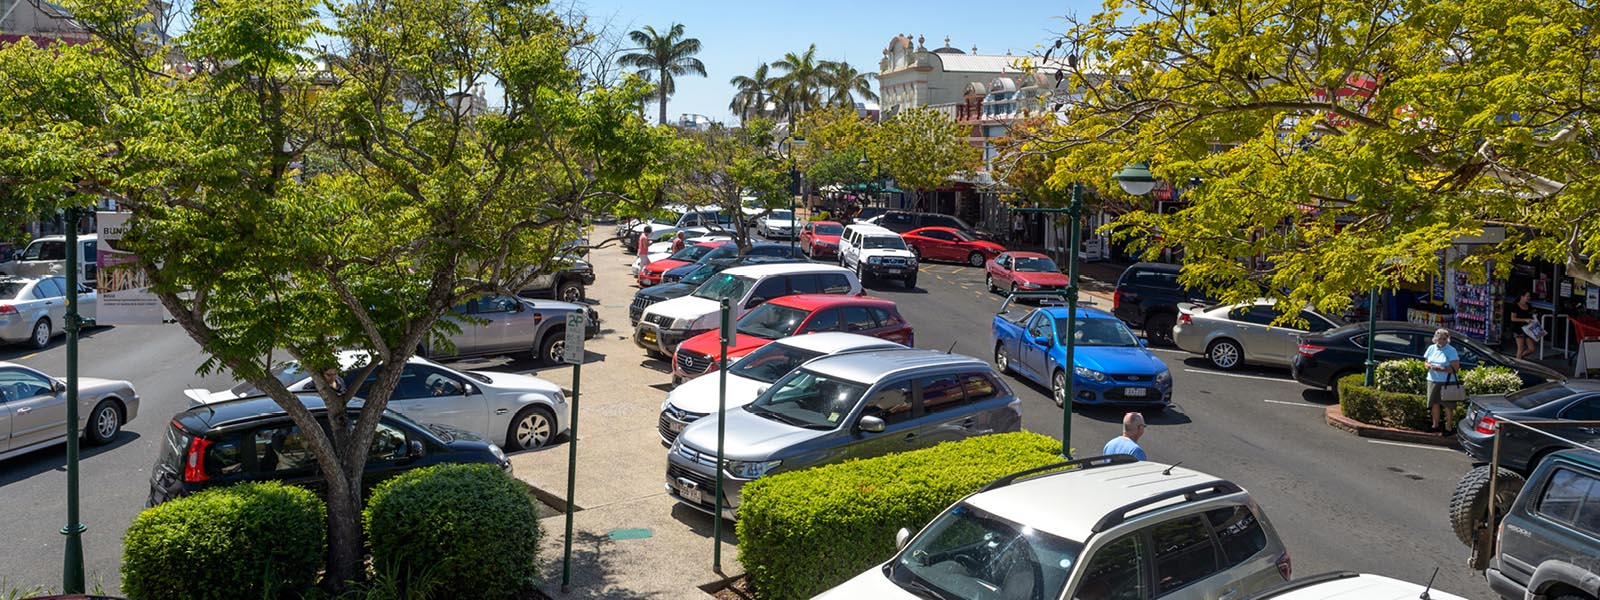 Parking in the bundaberg cbd